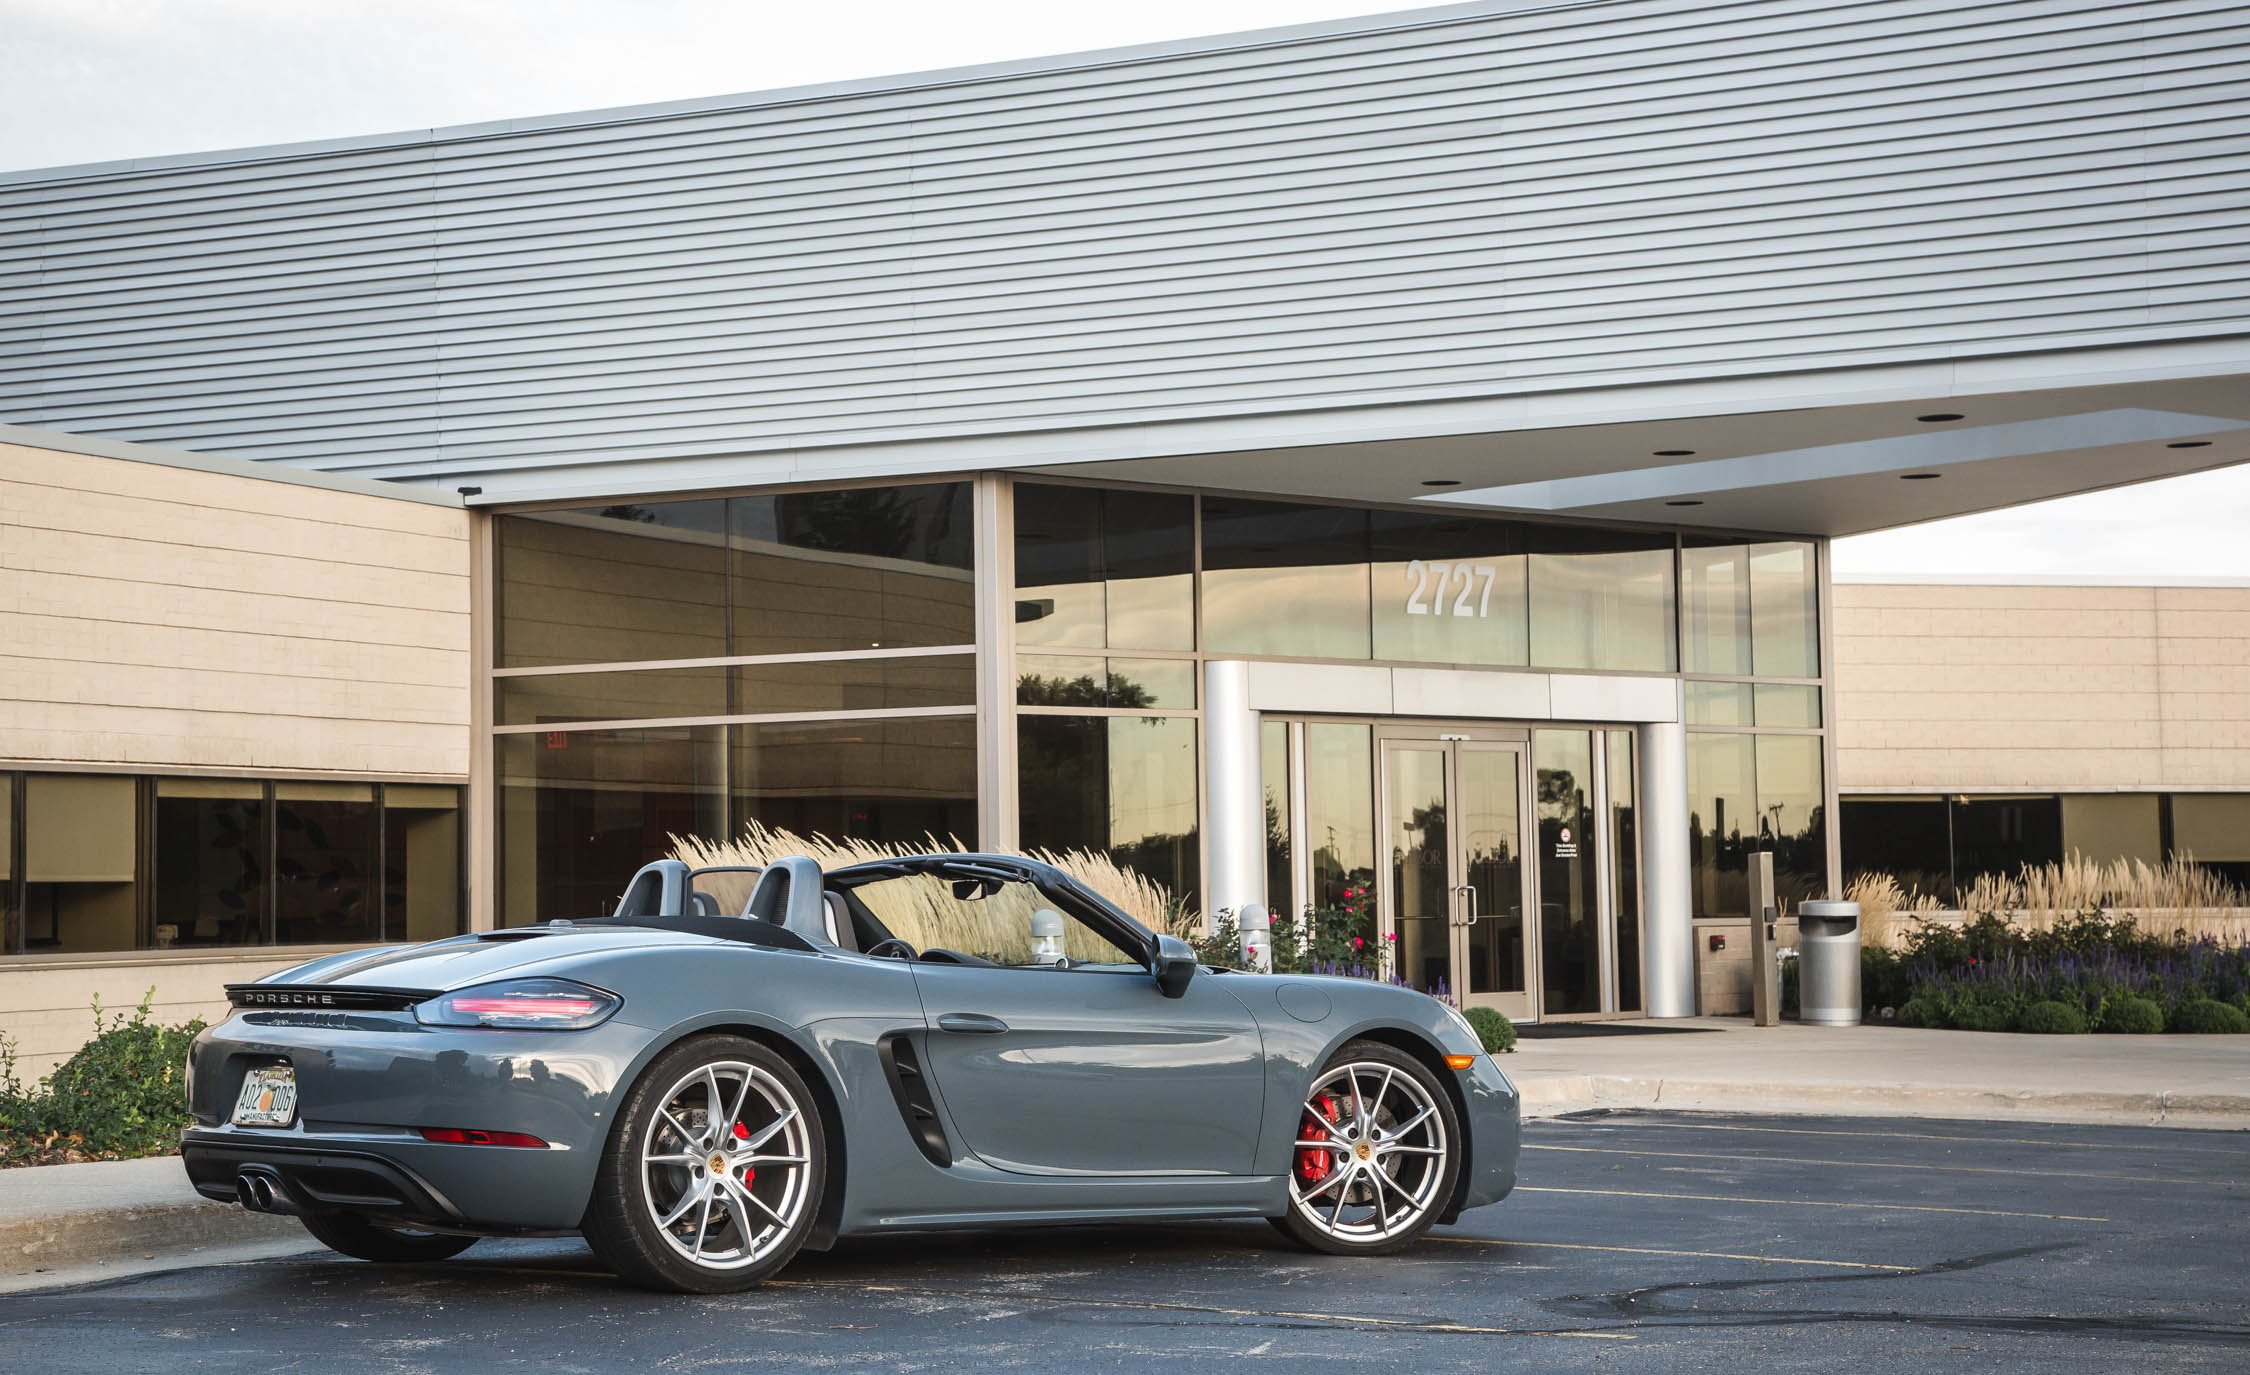 2017 Porsche 718 Boxster S Exterior Side (View 19 of 71)